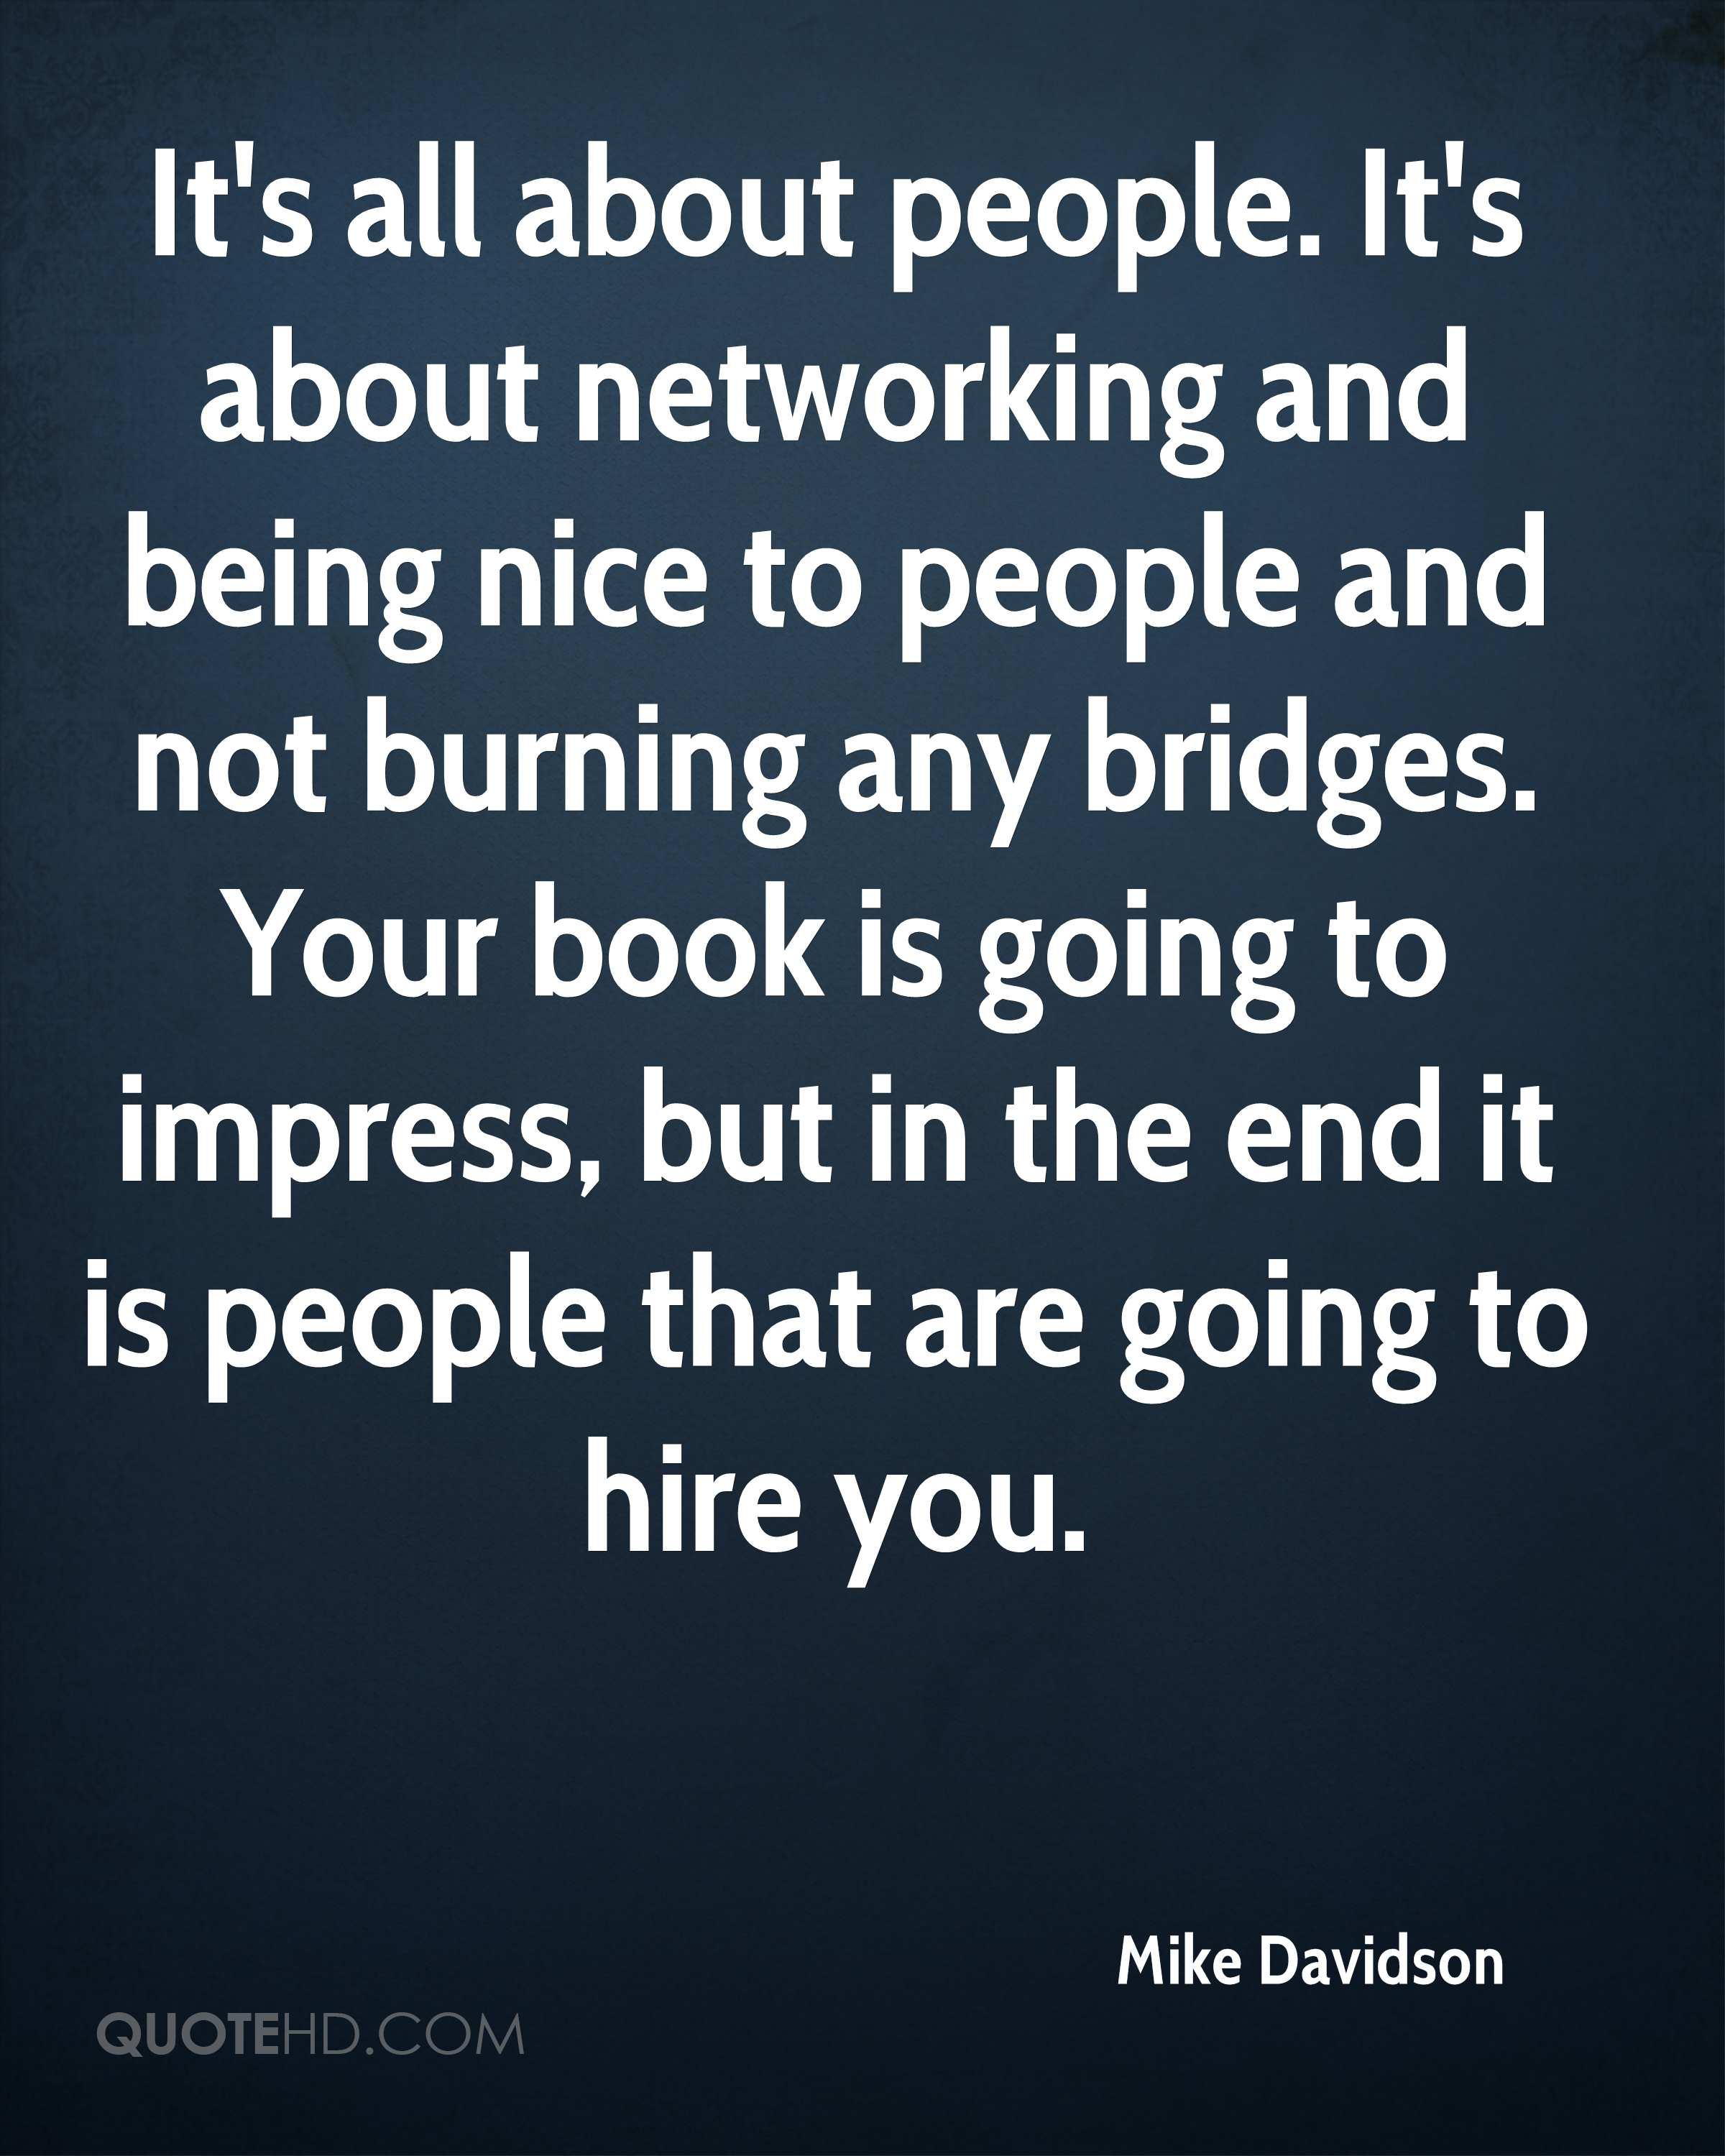 It's all about people. It's about networking and being nice to people and not burning any bridges. Your book is going to impress, but in the end it is people that are going to hire you.